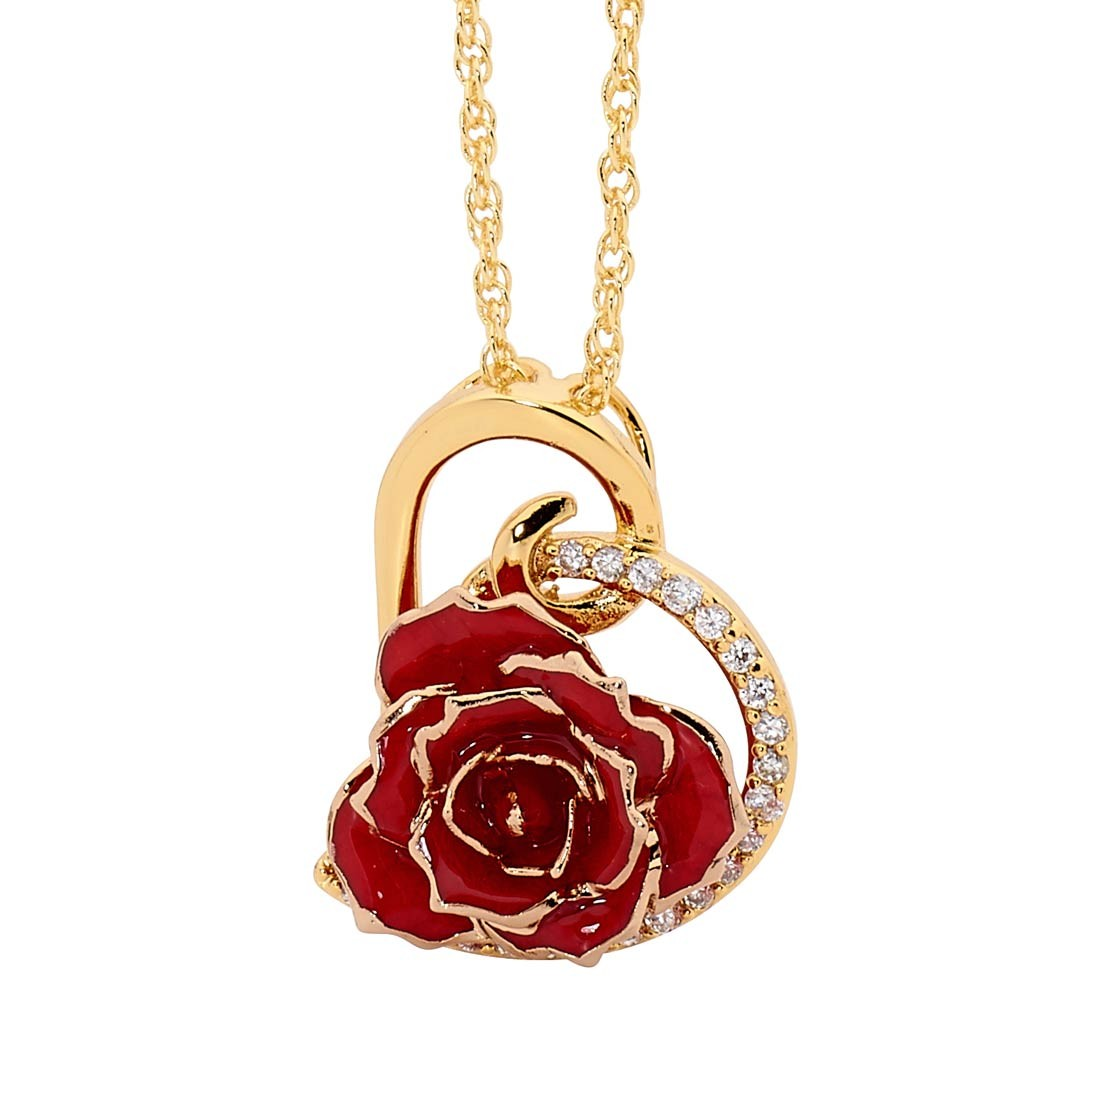 Gold Dipped Rose Amp Red Matched Jewellery Set In Heart Theme